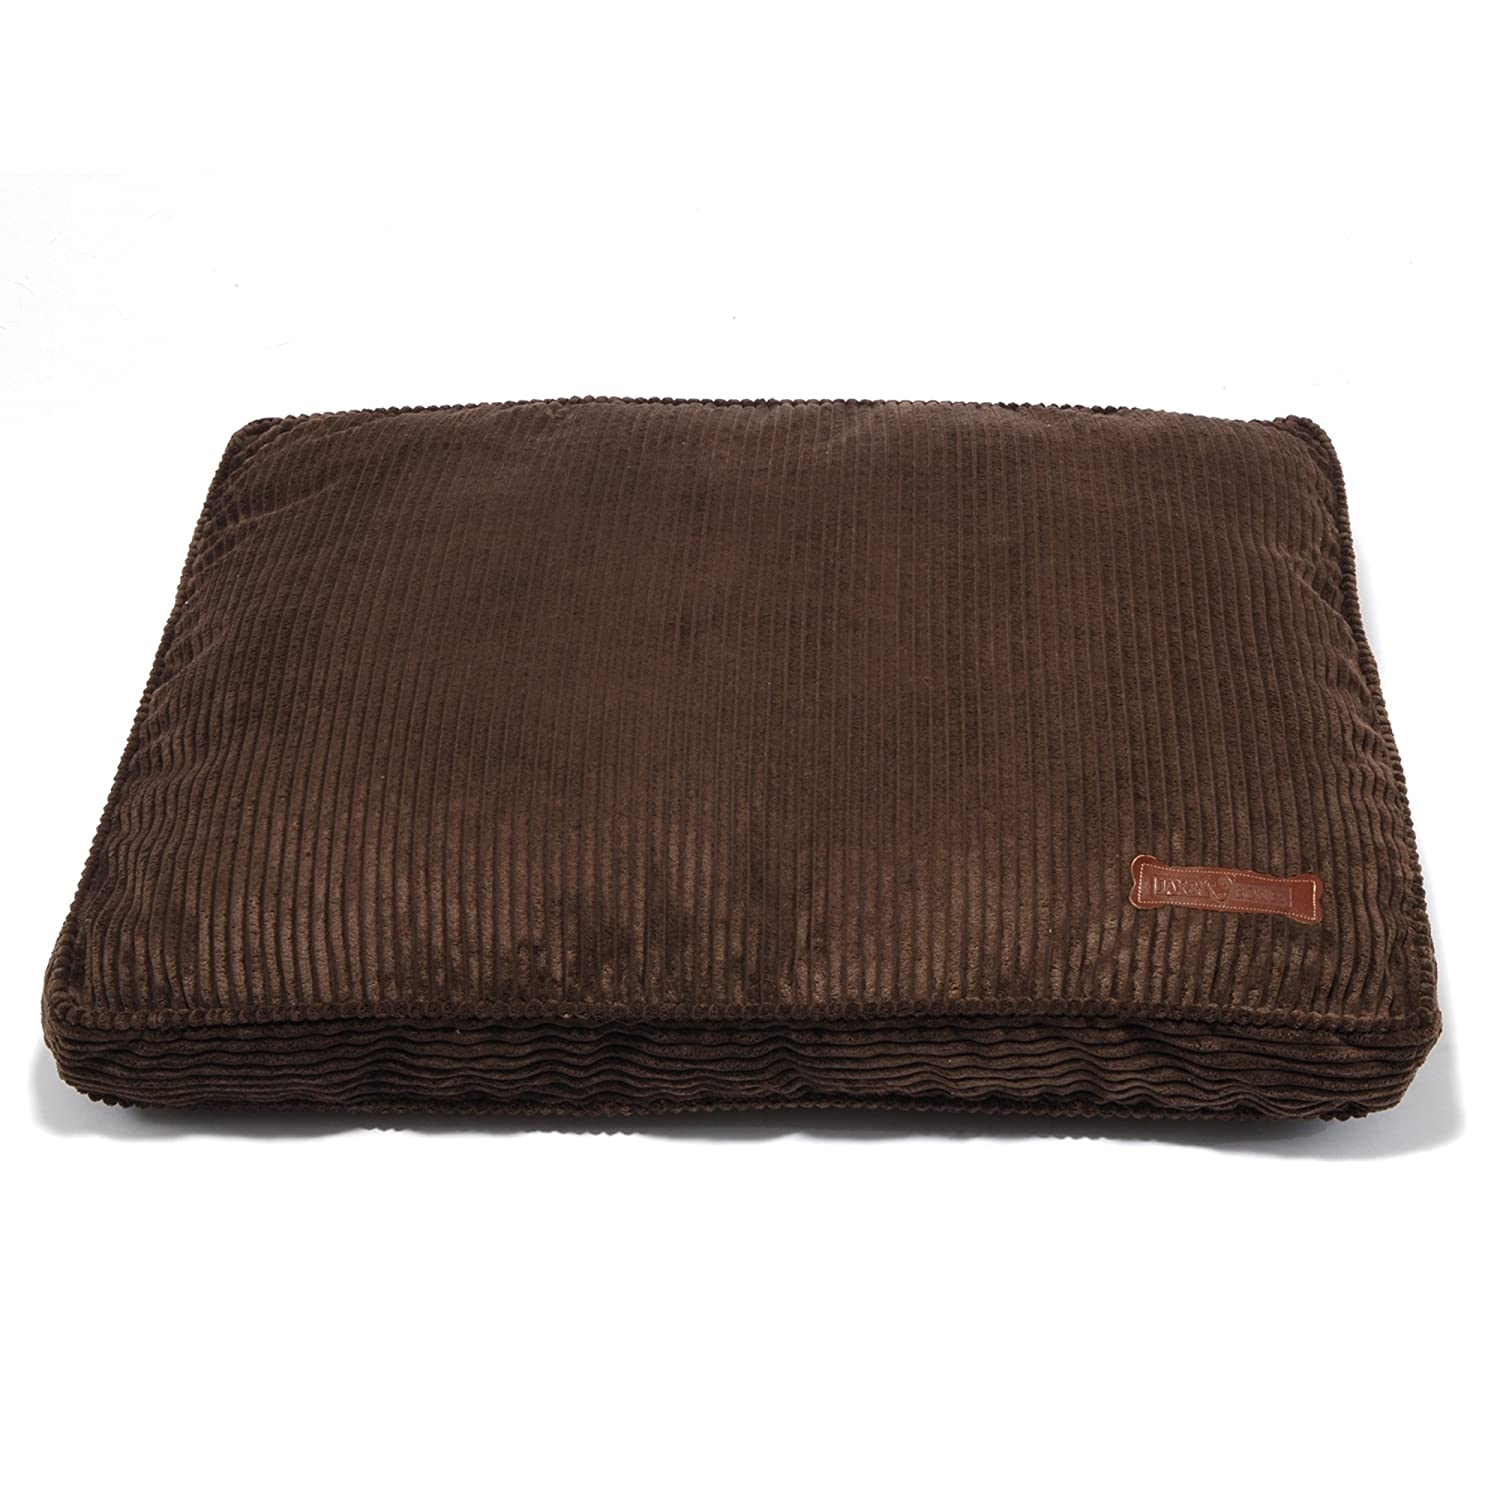 Chocolate Medium 36x28x5\ Chocolate Medium 36x28x5\ Jax and Bones 28 by 36-Inch Corduroy Rectangular Pillow Dog Bed, Medium, Chocolate